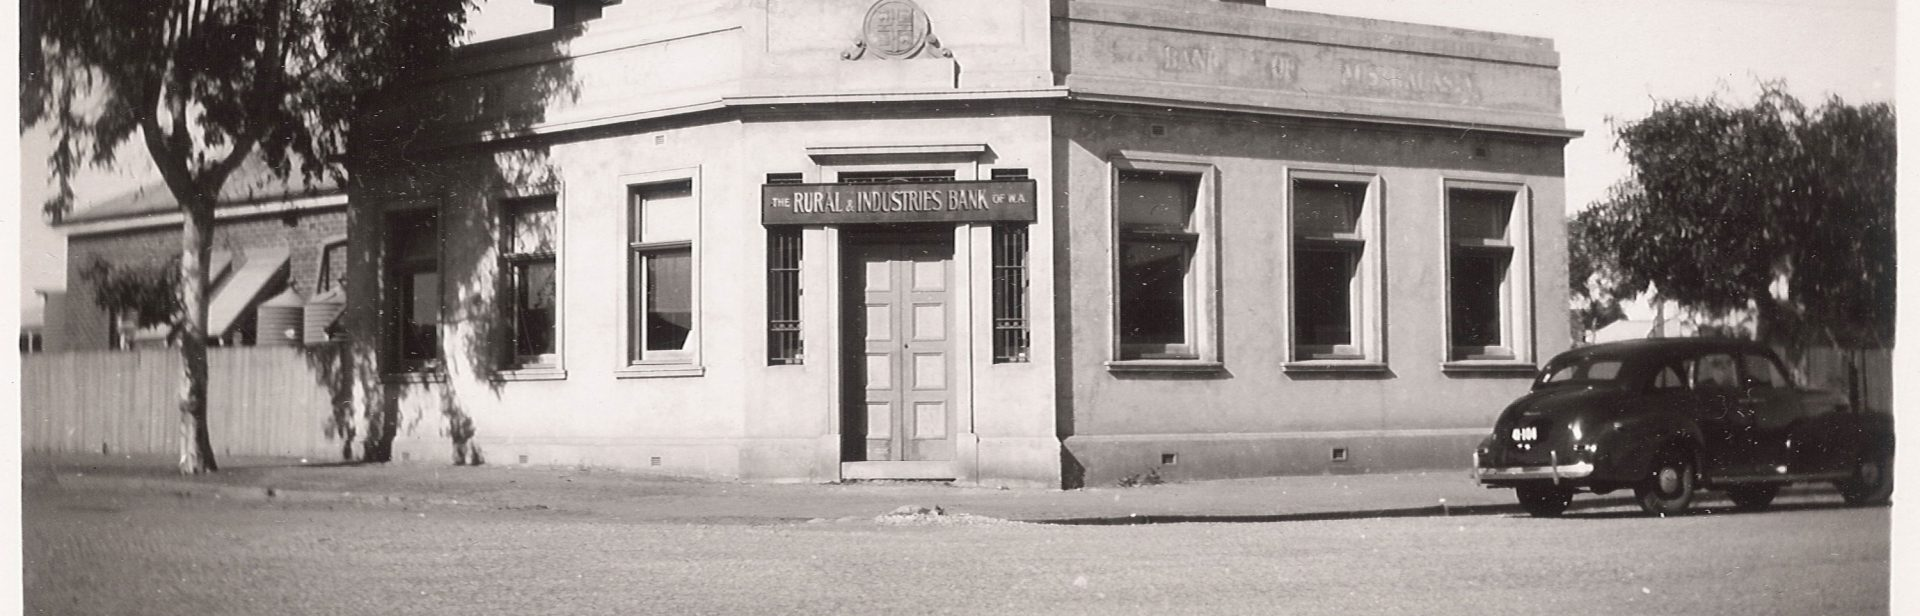 Back when it was the Rural & Industries Bank.